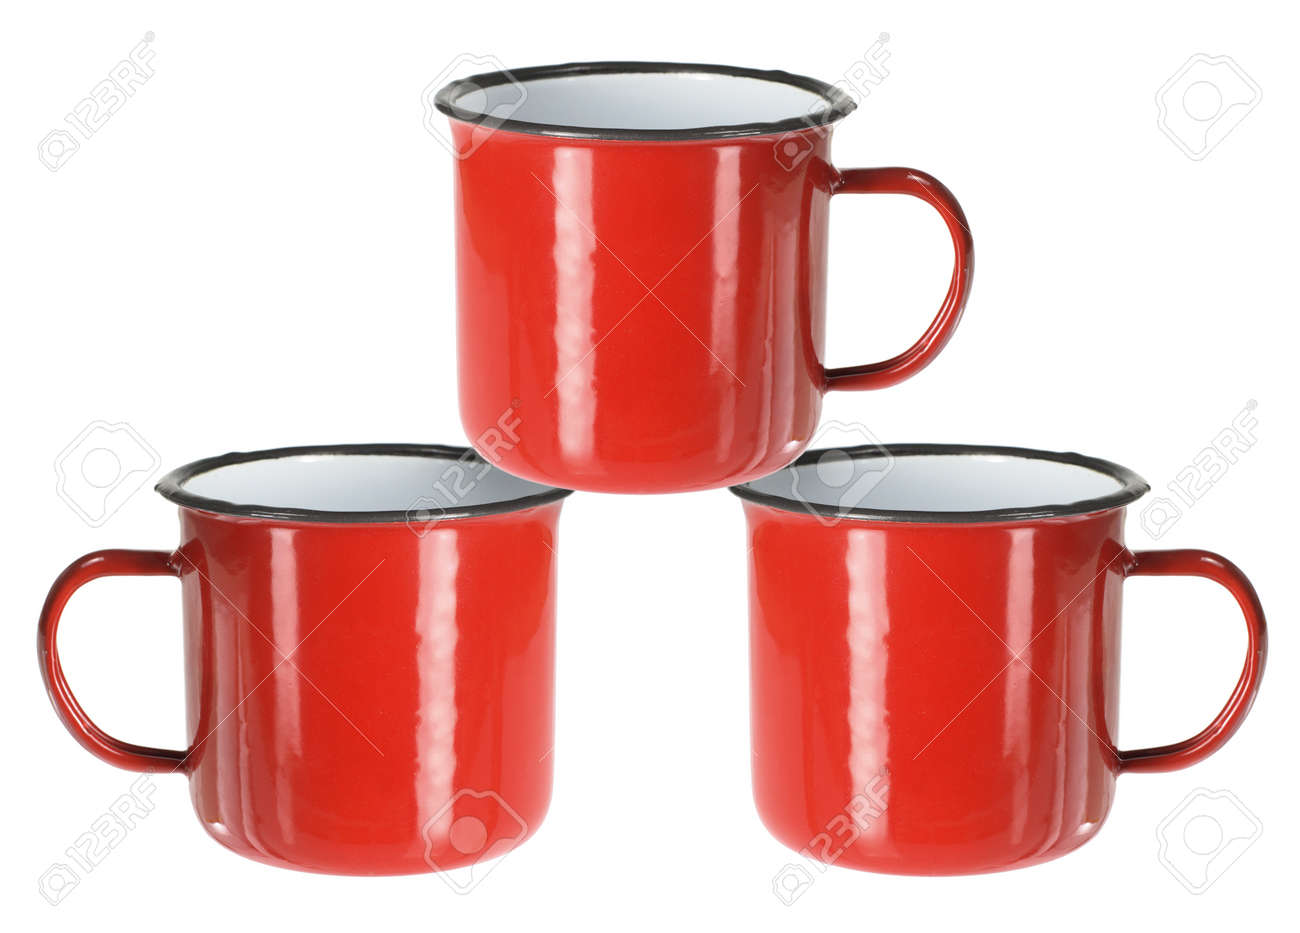 Tin Cups on White Background Stock Photo - 14317371